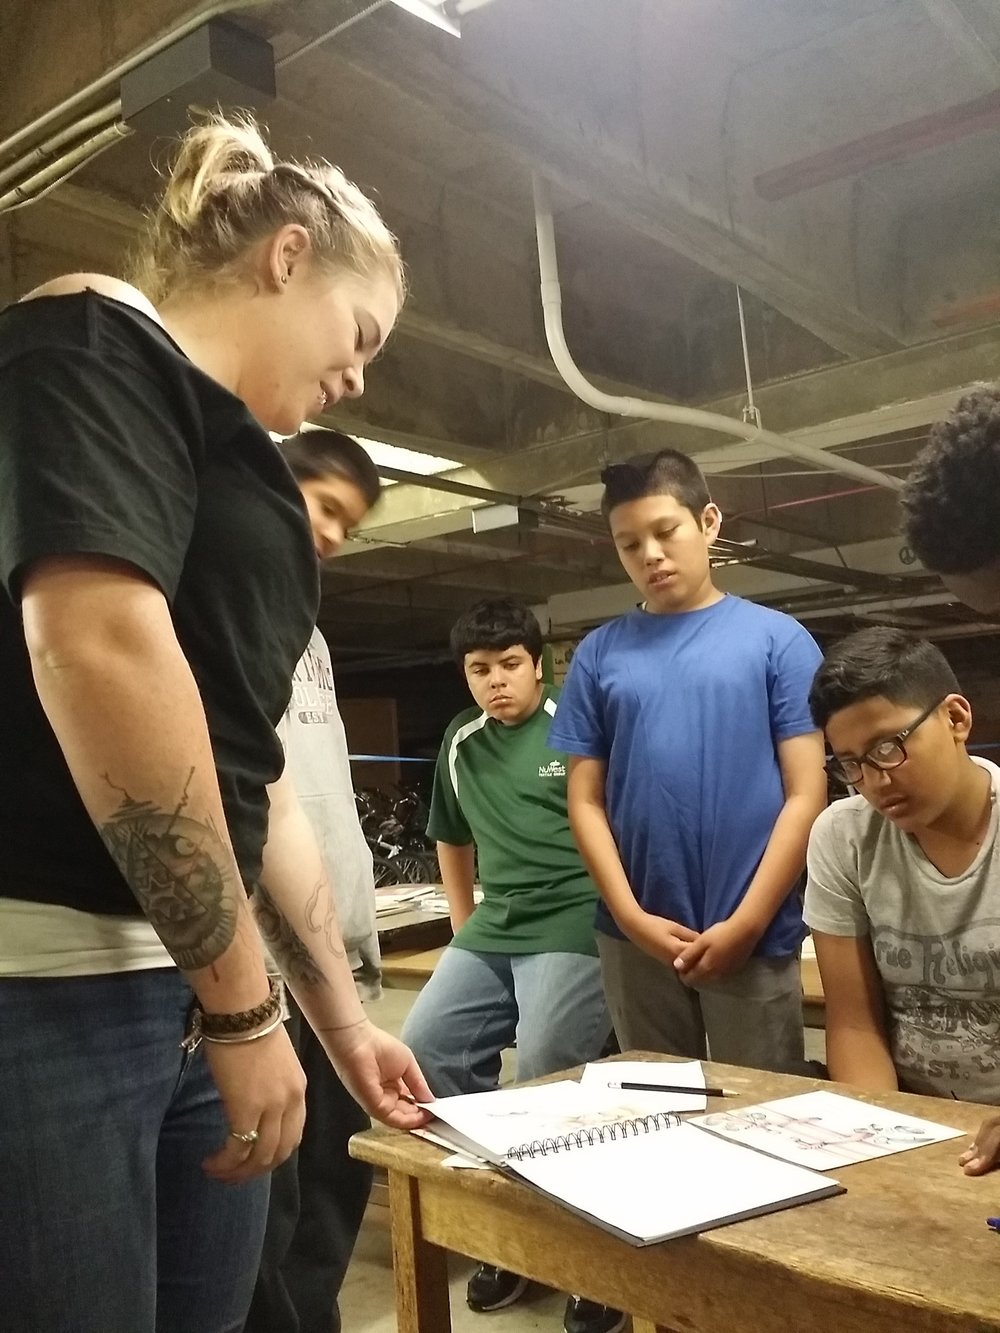 Tattoo artist Anna K. shared her sketchbook with the class and participated in live drawing demonstrations.